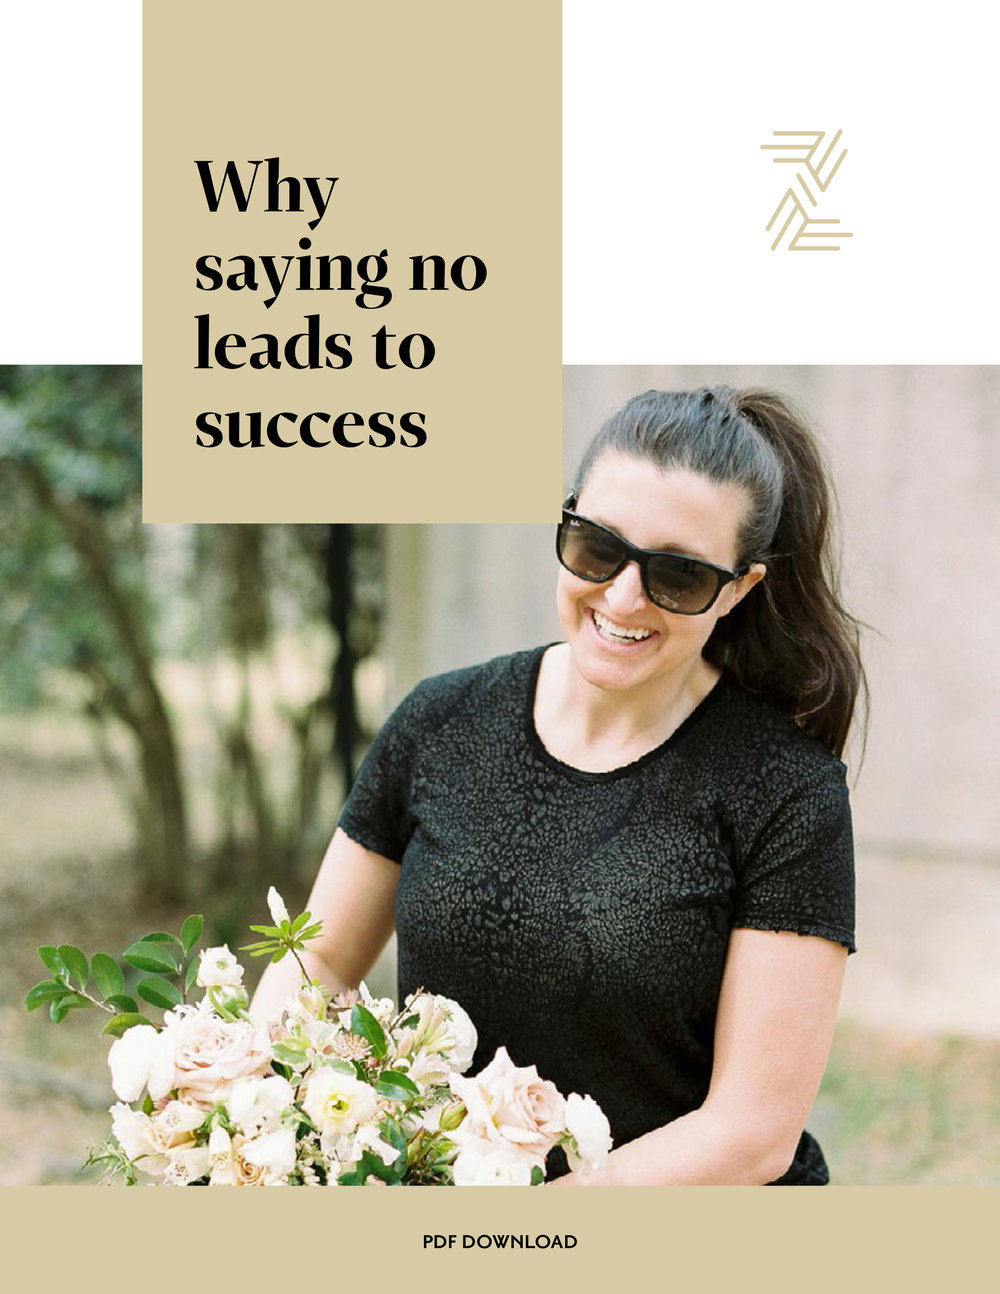 whysayingnoleadstosuccess-1.jpg